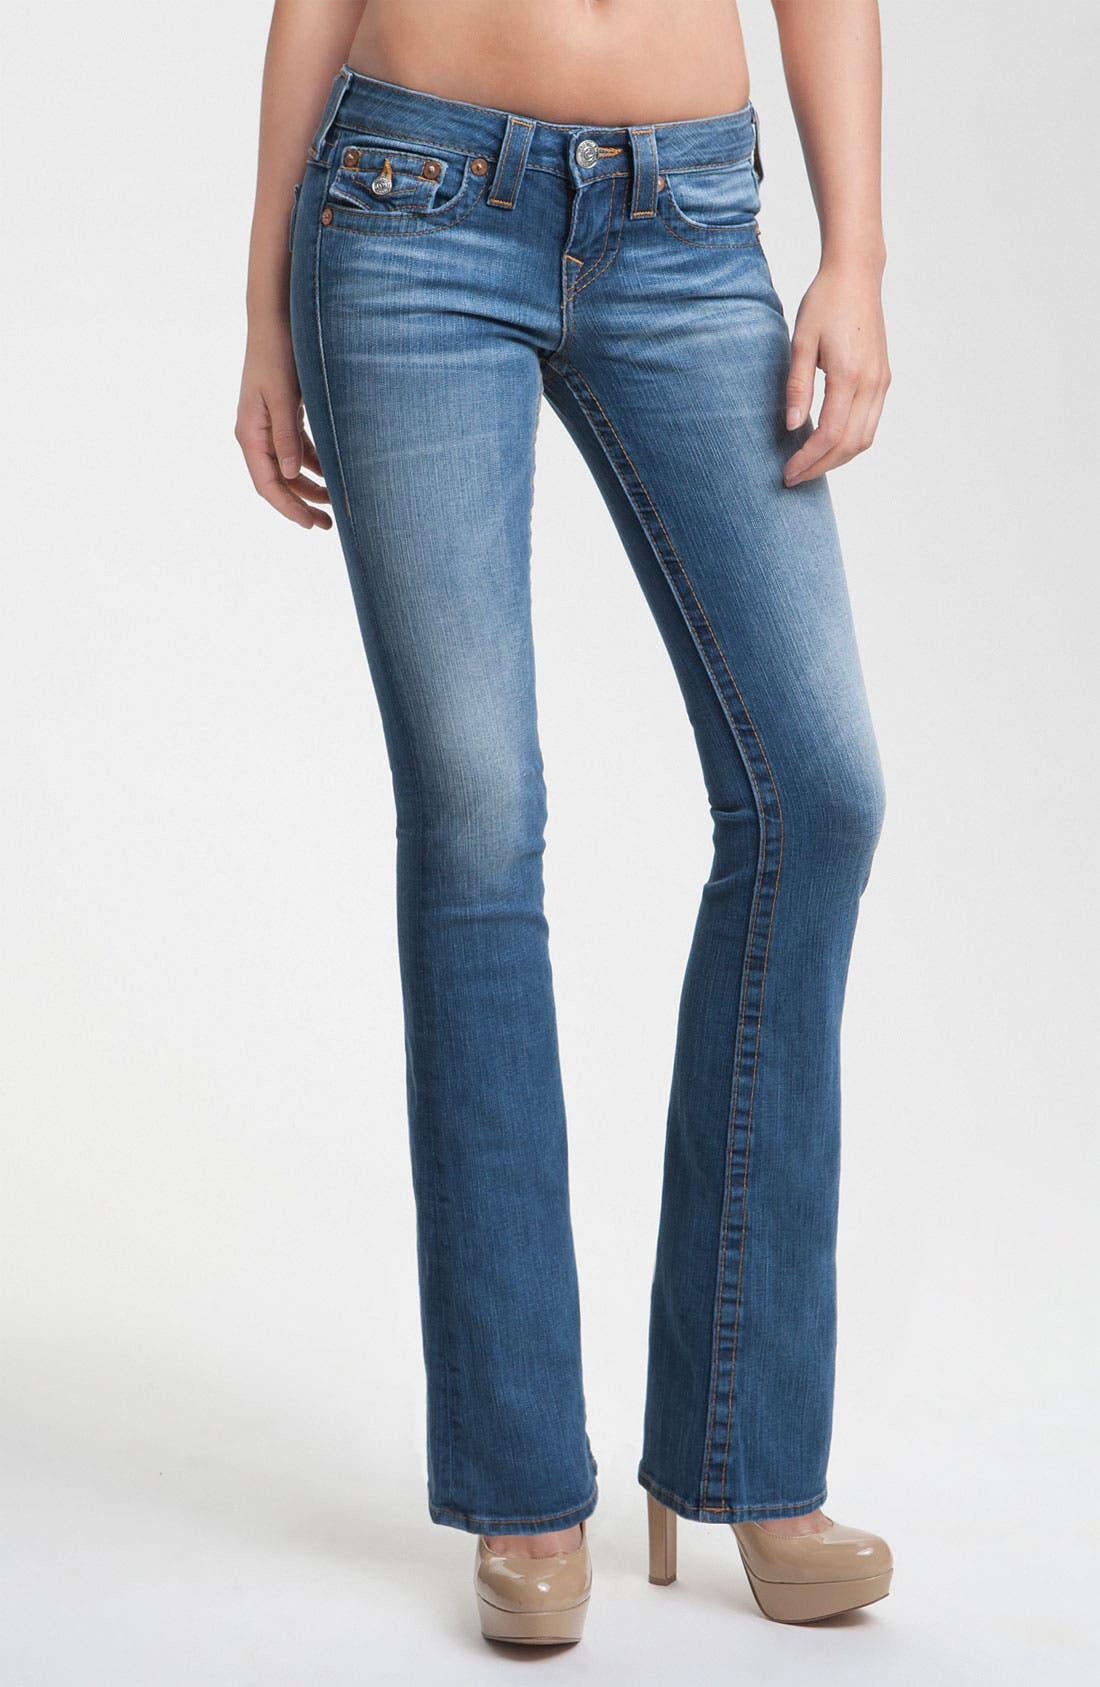 Alternate Image 1 Selected - True Religion Brand Jeans 'Becky' Bootcut Jeans (Short Fuse)(Petite)